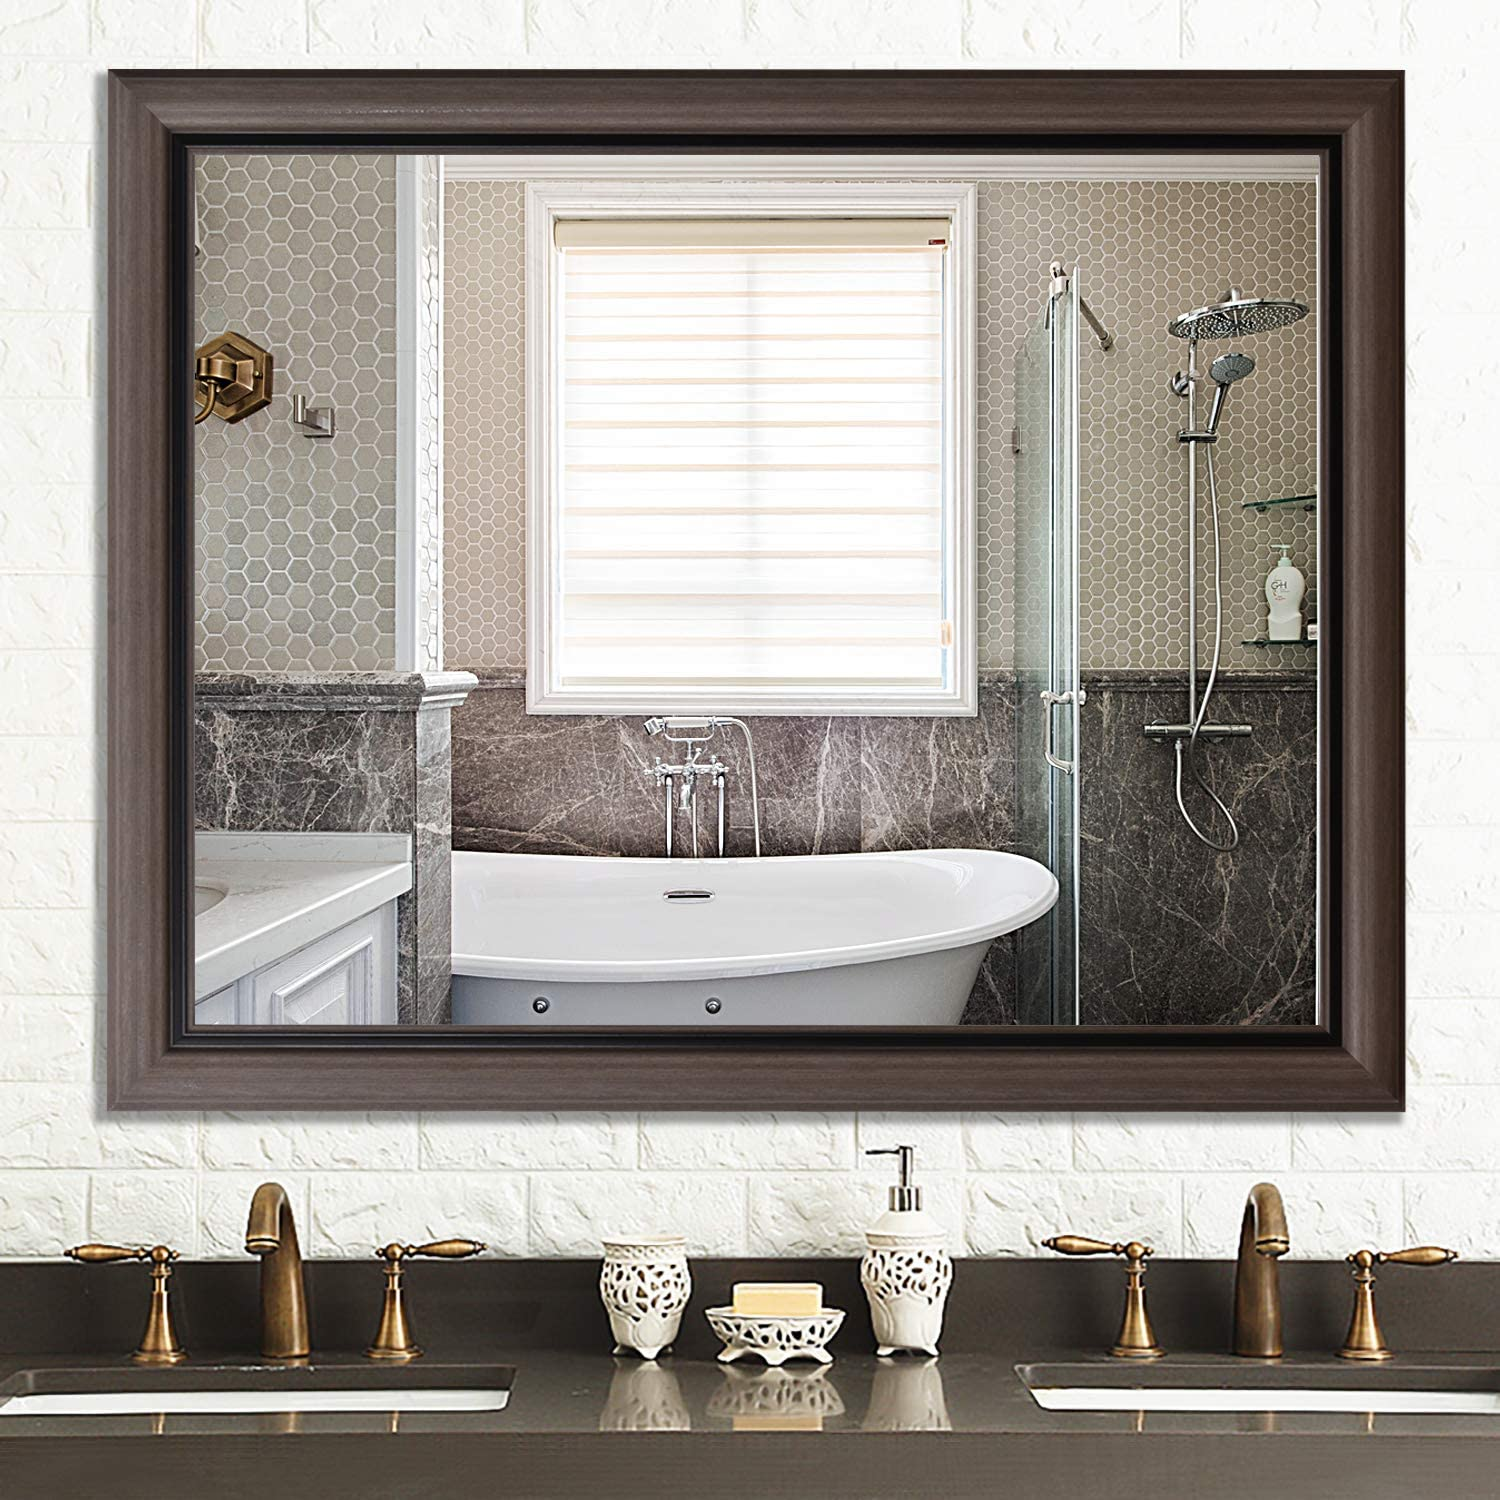 Amazon Com Pexfix 32 X 40 Wall Mirror Modern And Contemporary Accent Mirror Wall Mounted Mirror Simple Wide Frame Hanging Mirror Bathroom Mirror Light Brown Kitchen Dining